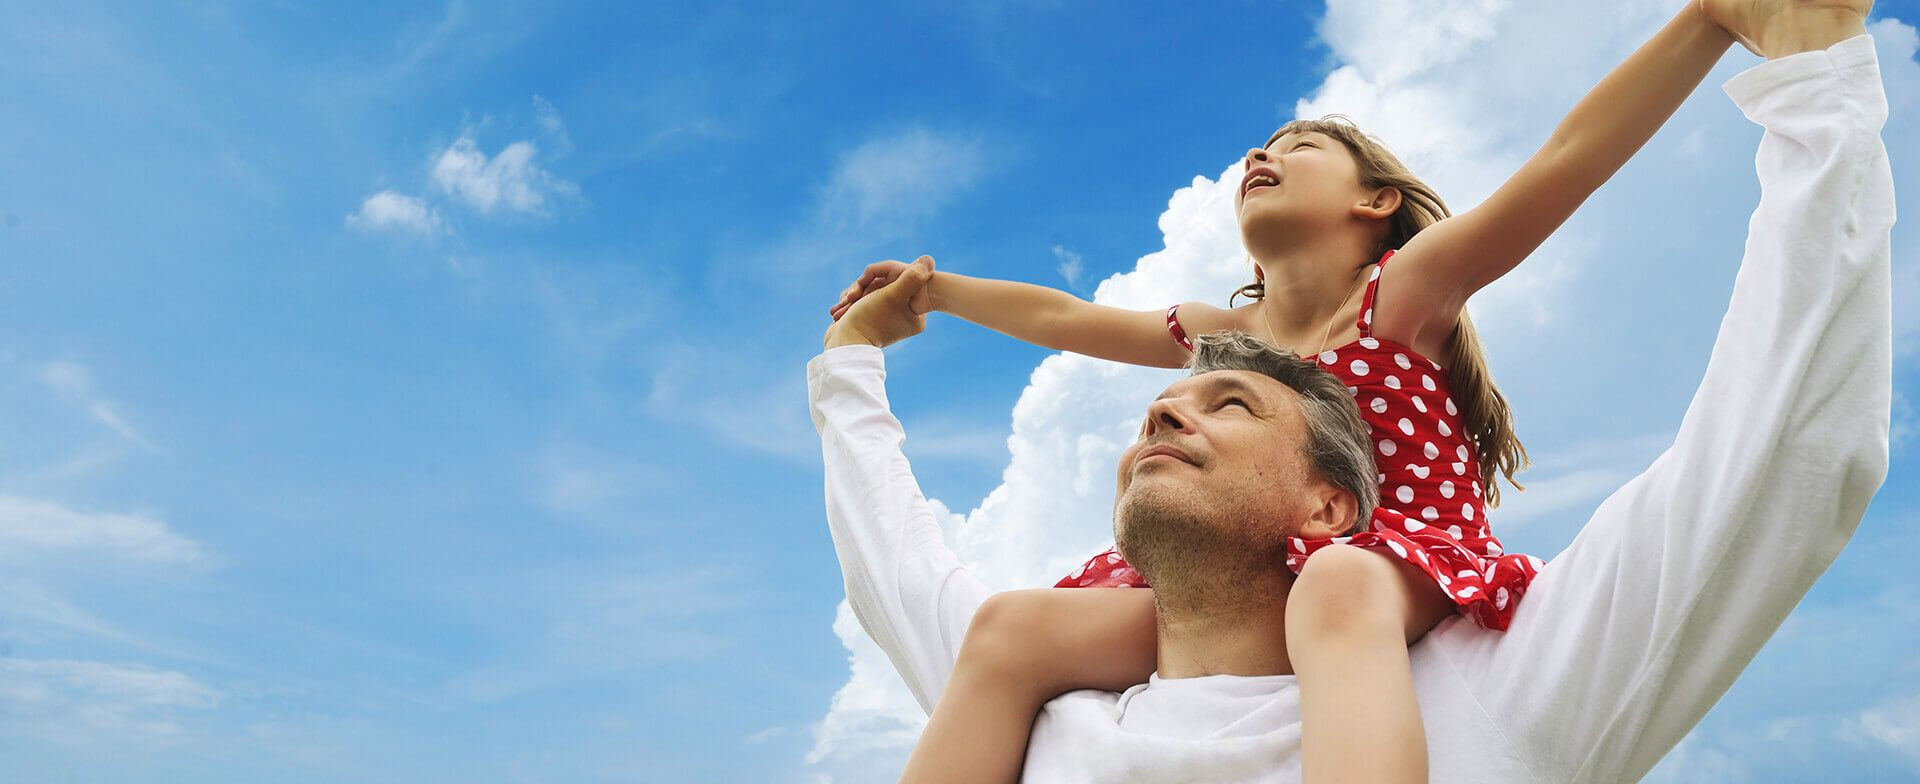 Dad lifting his daughter on his shoulders and looking up to the sky